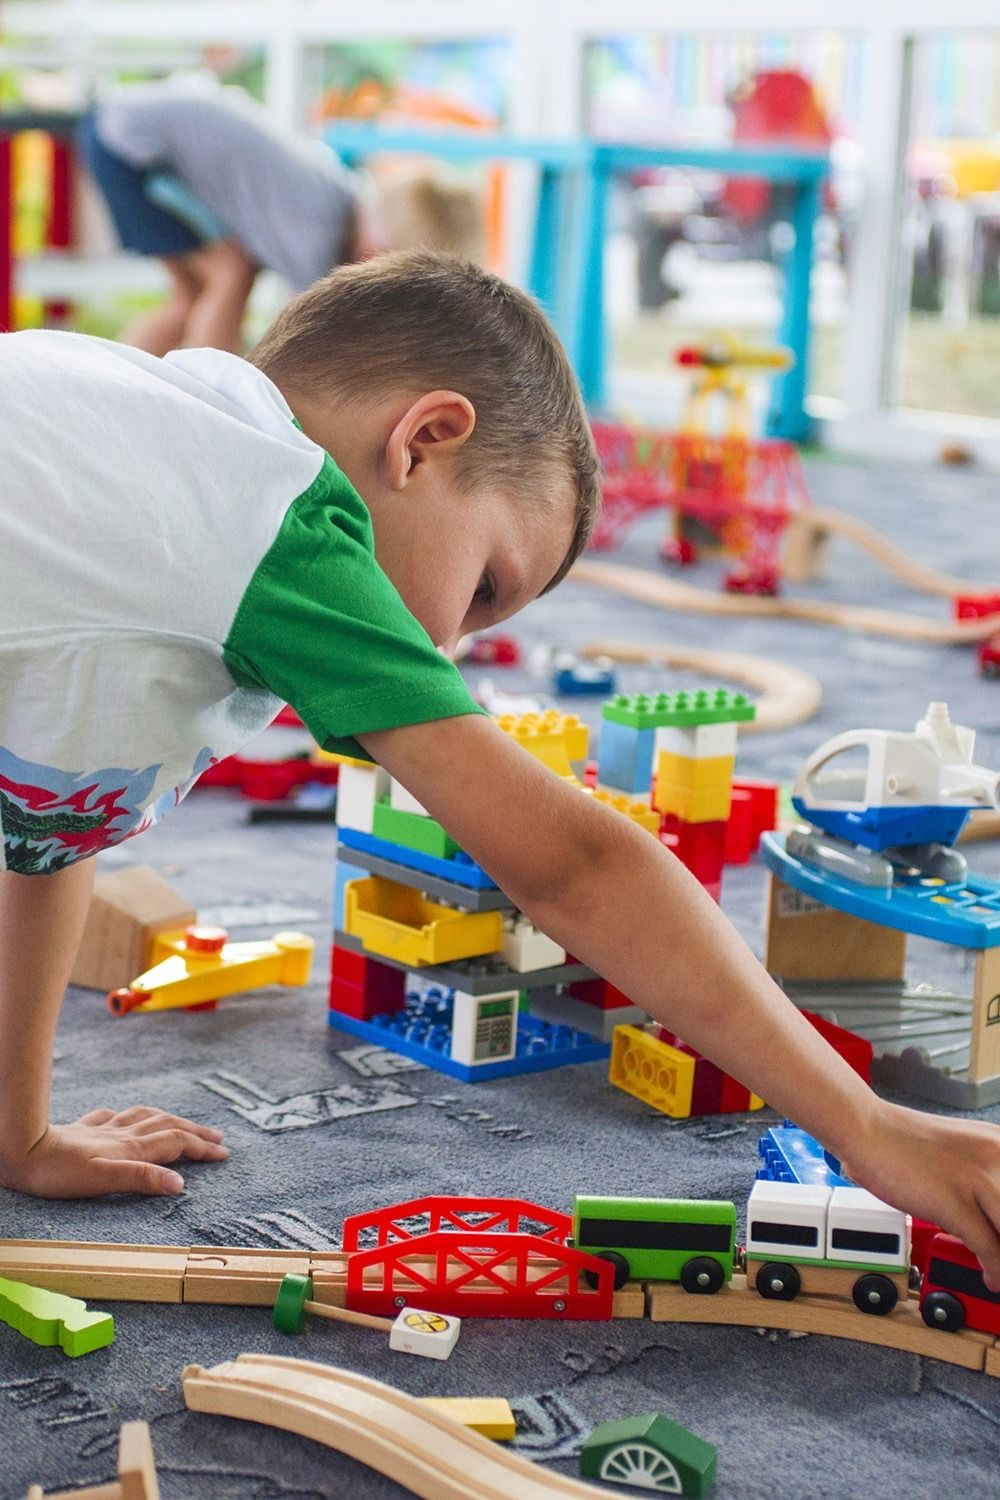 Motorized Train For Wooden Track Games Motherhood Creative Play